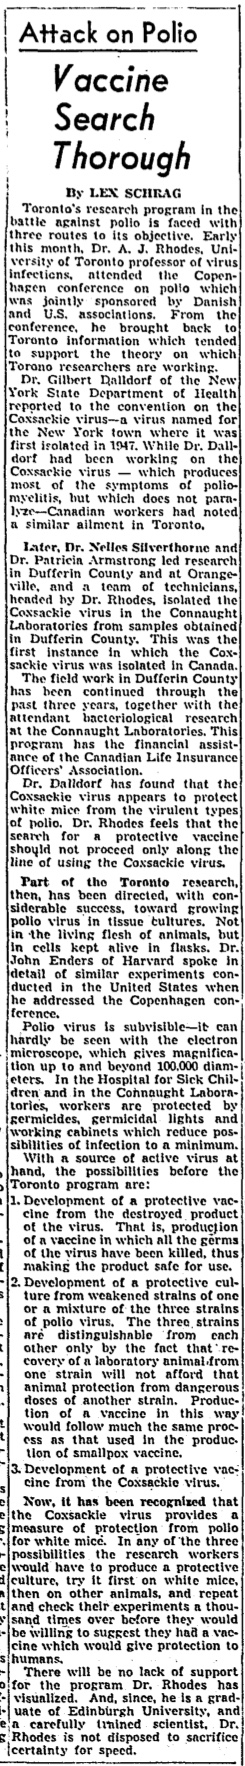 This article from the Globe and Mail of September 25, 1951, provides a detailed summary of the rapid developments of polio research discussed an a international conference held in Copenhagen, including work by Rhodes' group at Connaught